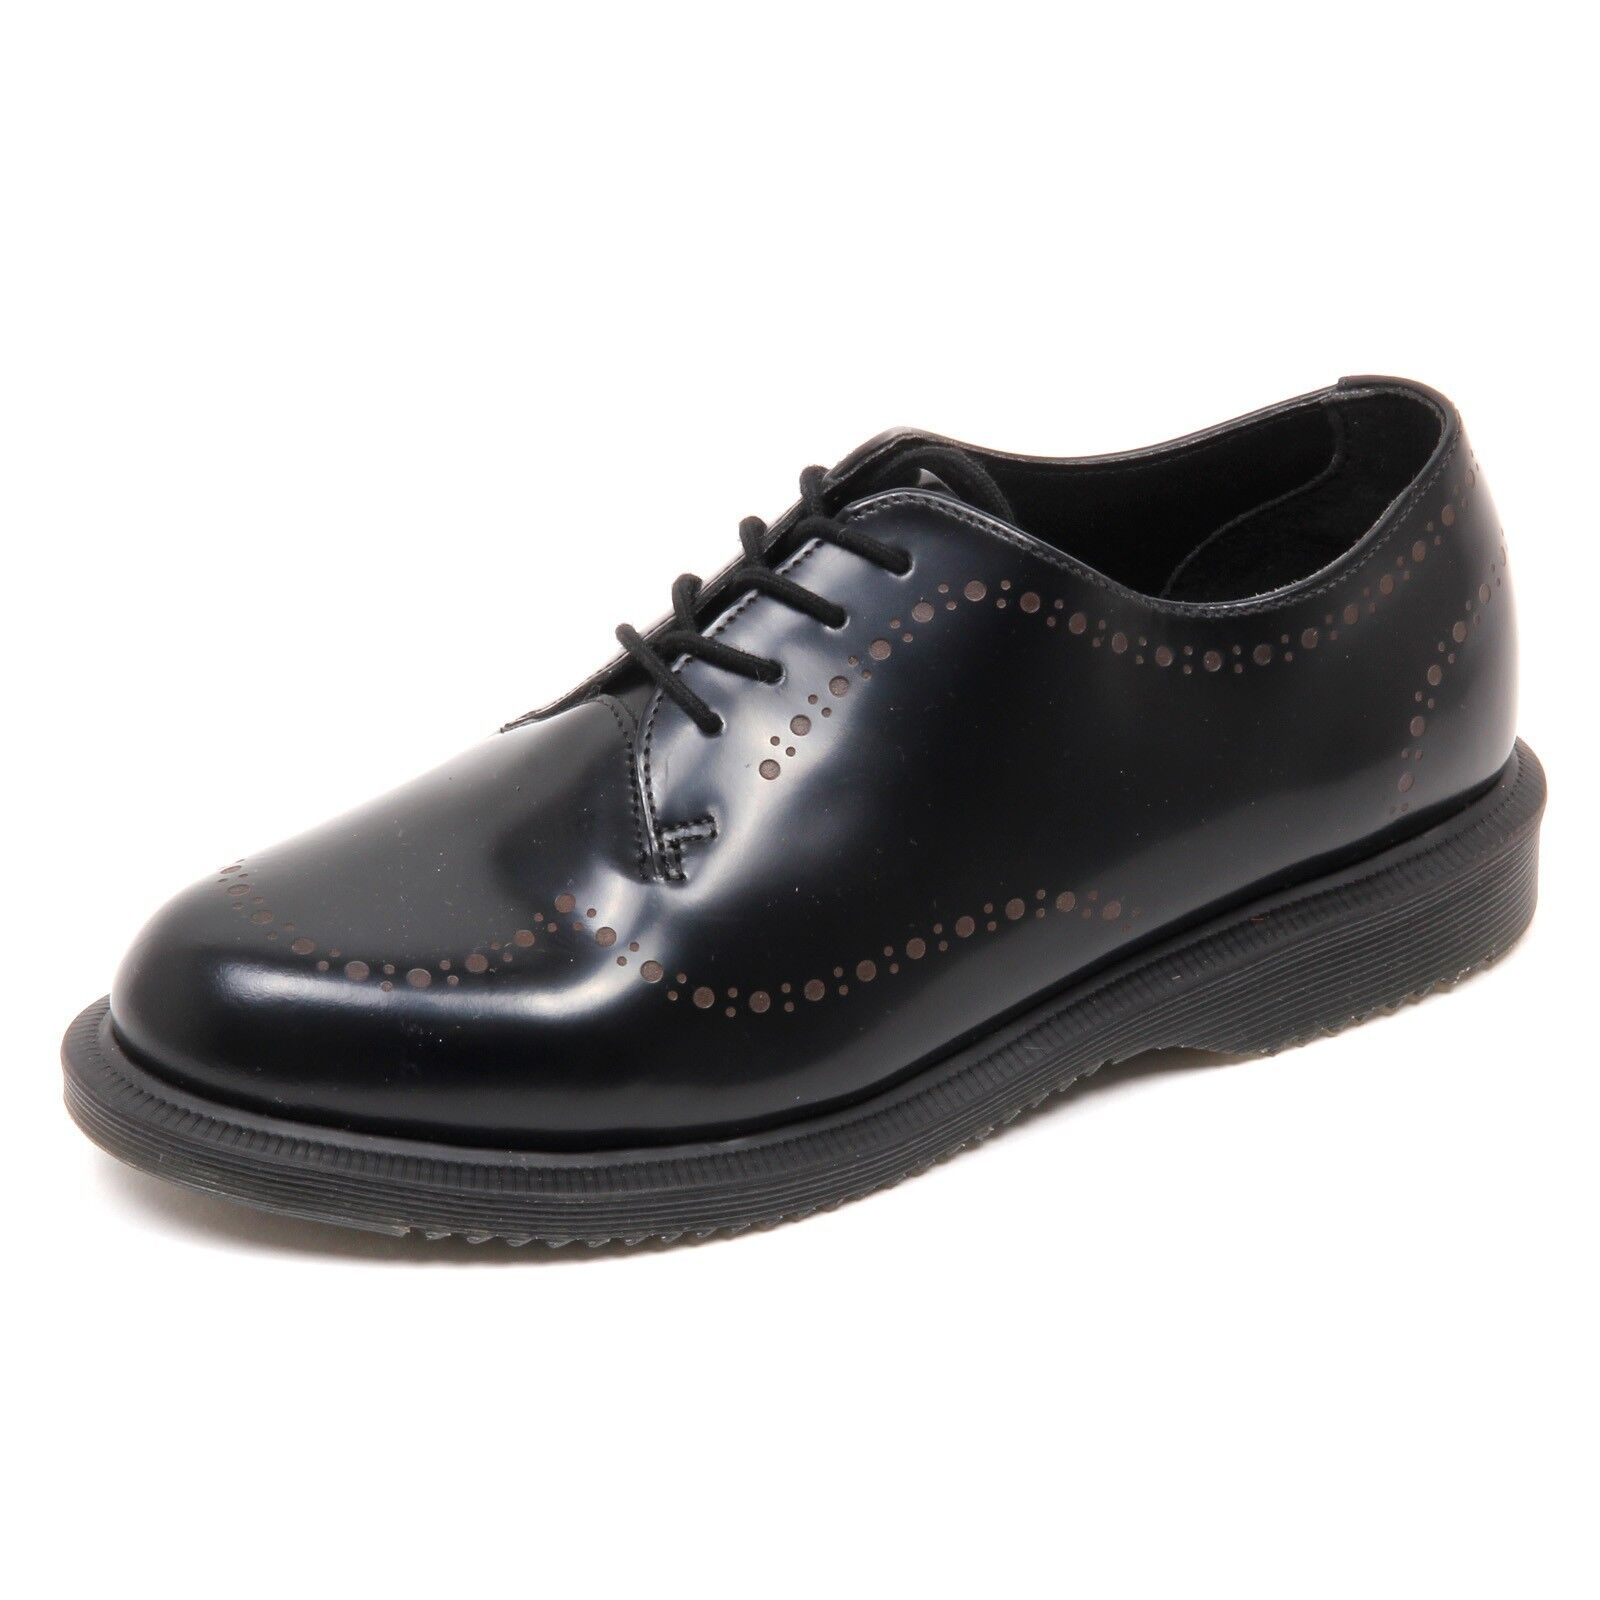 D4042 (without box) nero scarpa donna DR. MARTENS CHARLOTTE SMOOTH nero box) shoe woman d7be74